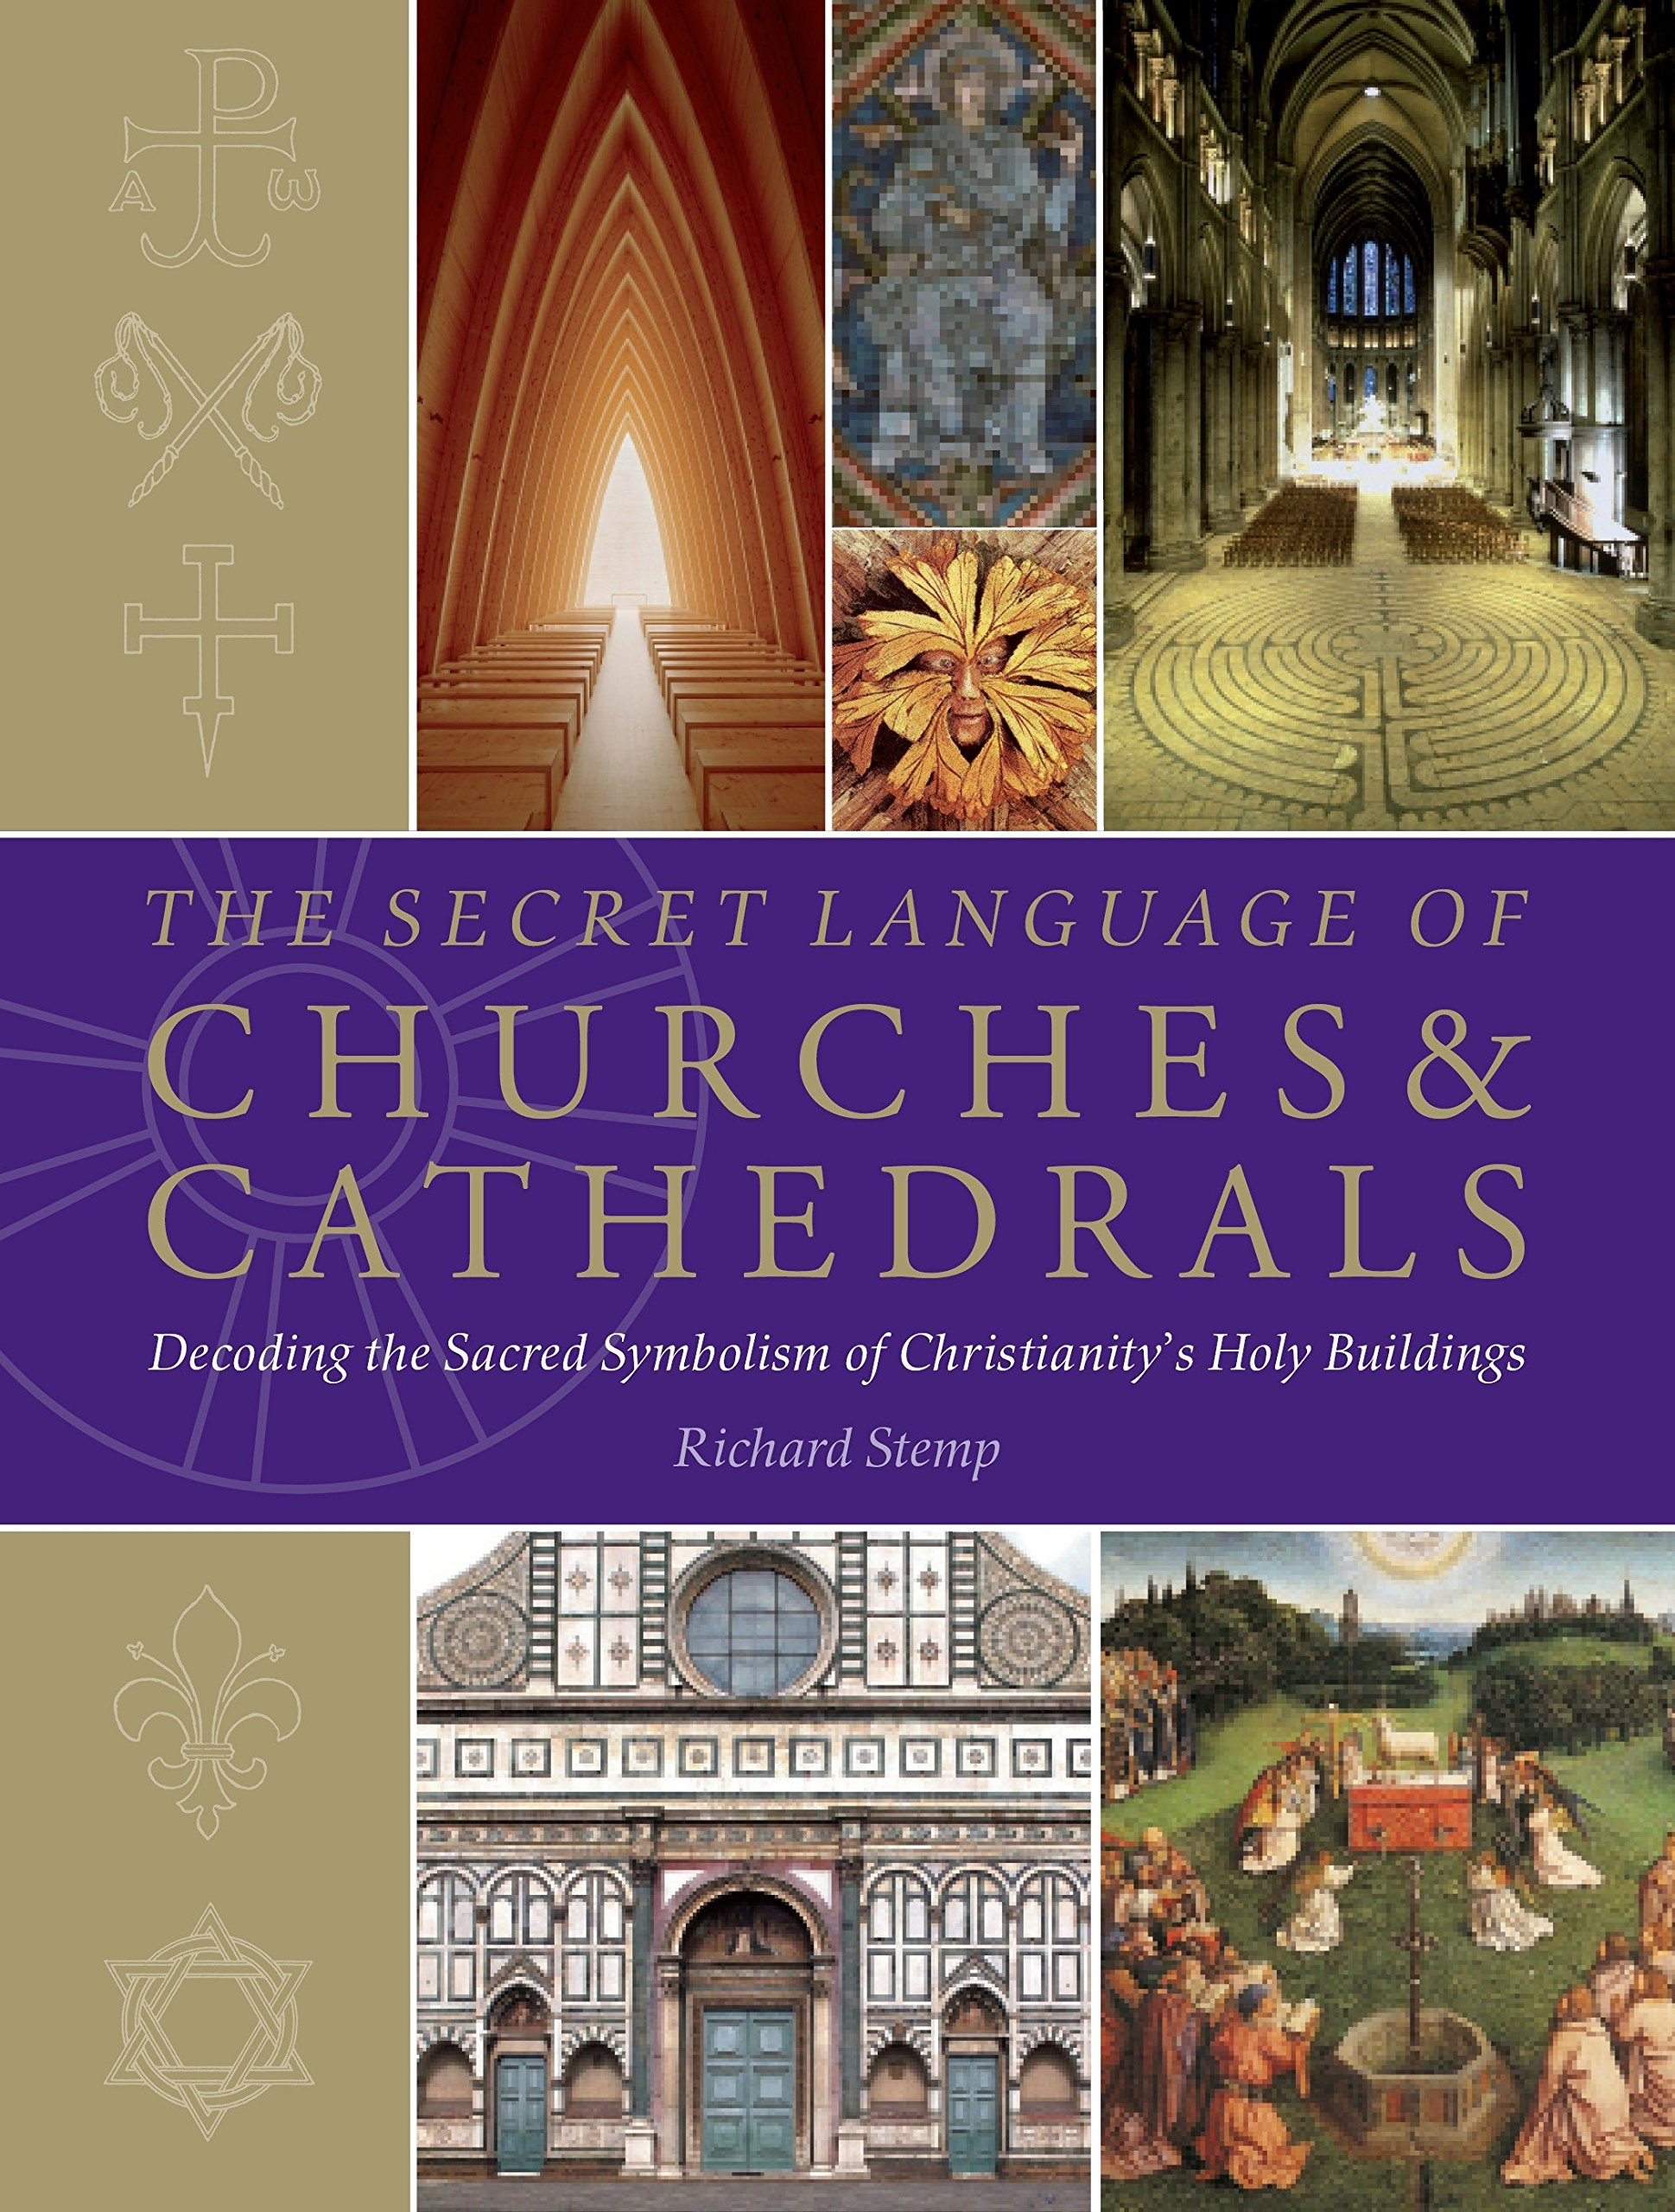 The Secret Language of Churches & Cathedrals: Decoding the Sacred Symbolism of Christianity's Holy Building by Watkins Publishing